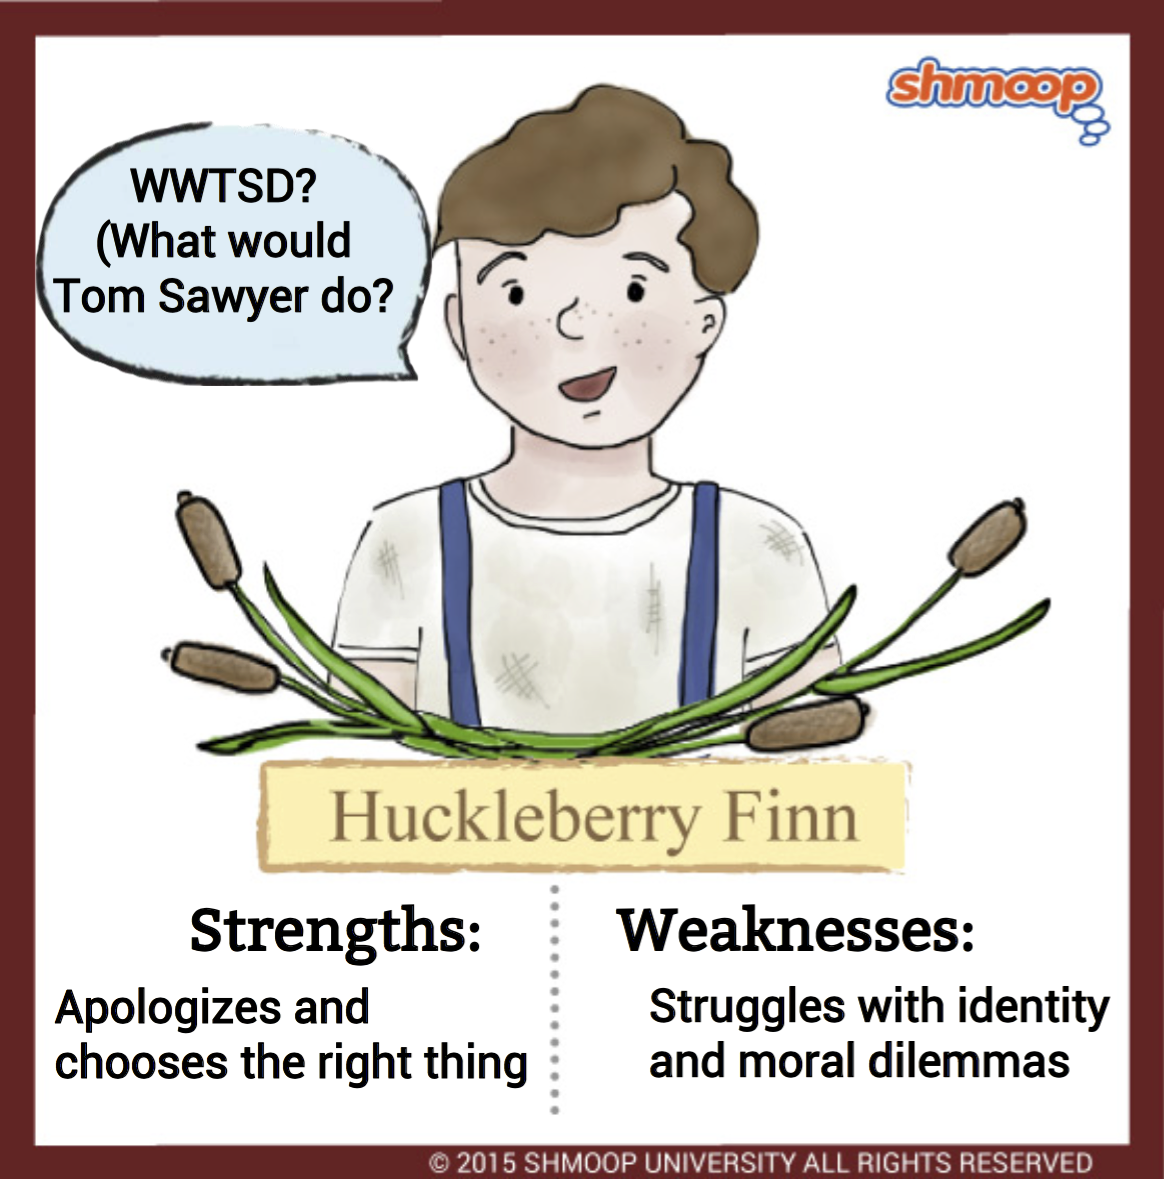 an analysis of themes in the adventures of huckleberry finn by mark twain The adventures of huckleberry finn mark twain, 1884 famous for: larger-than-life characters, a searing message about slavery, and language that may make you uncomfortable (so check out recap 5.